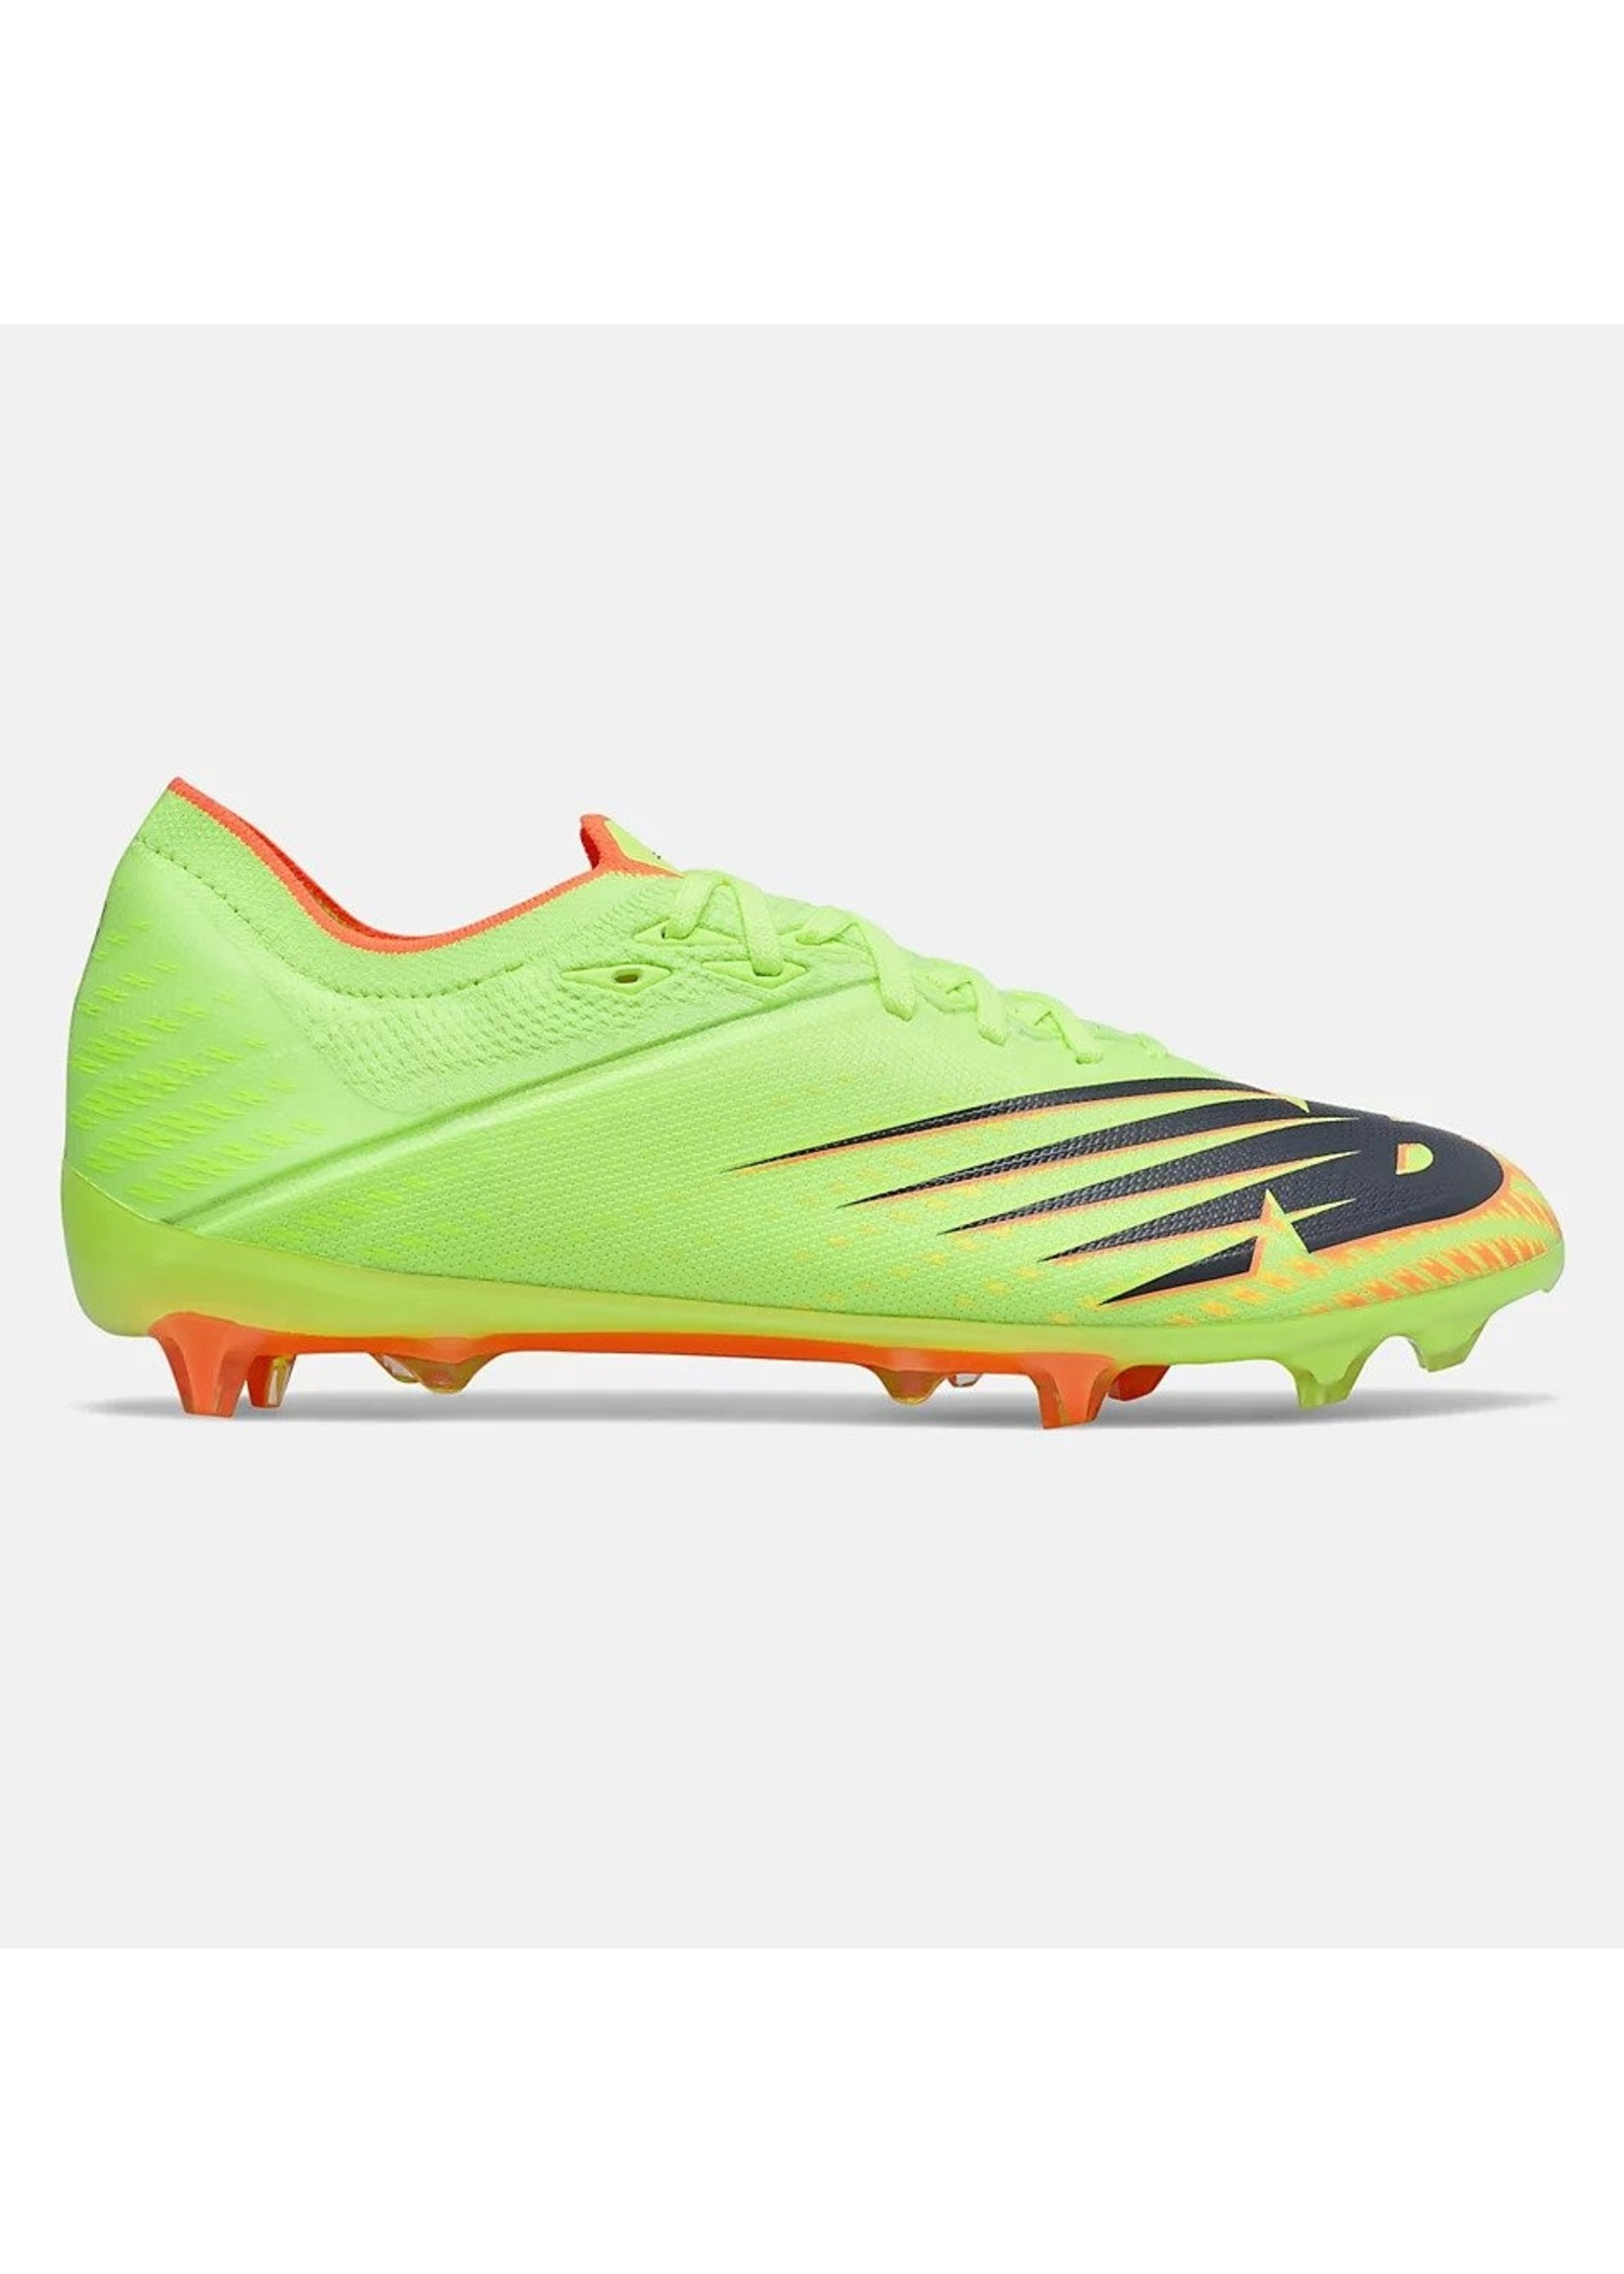 New Balance Furon V6+ Destroy FG - Lime